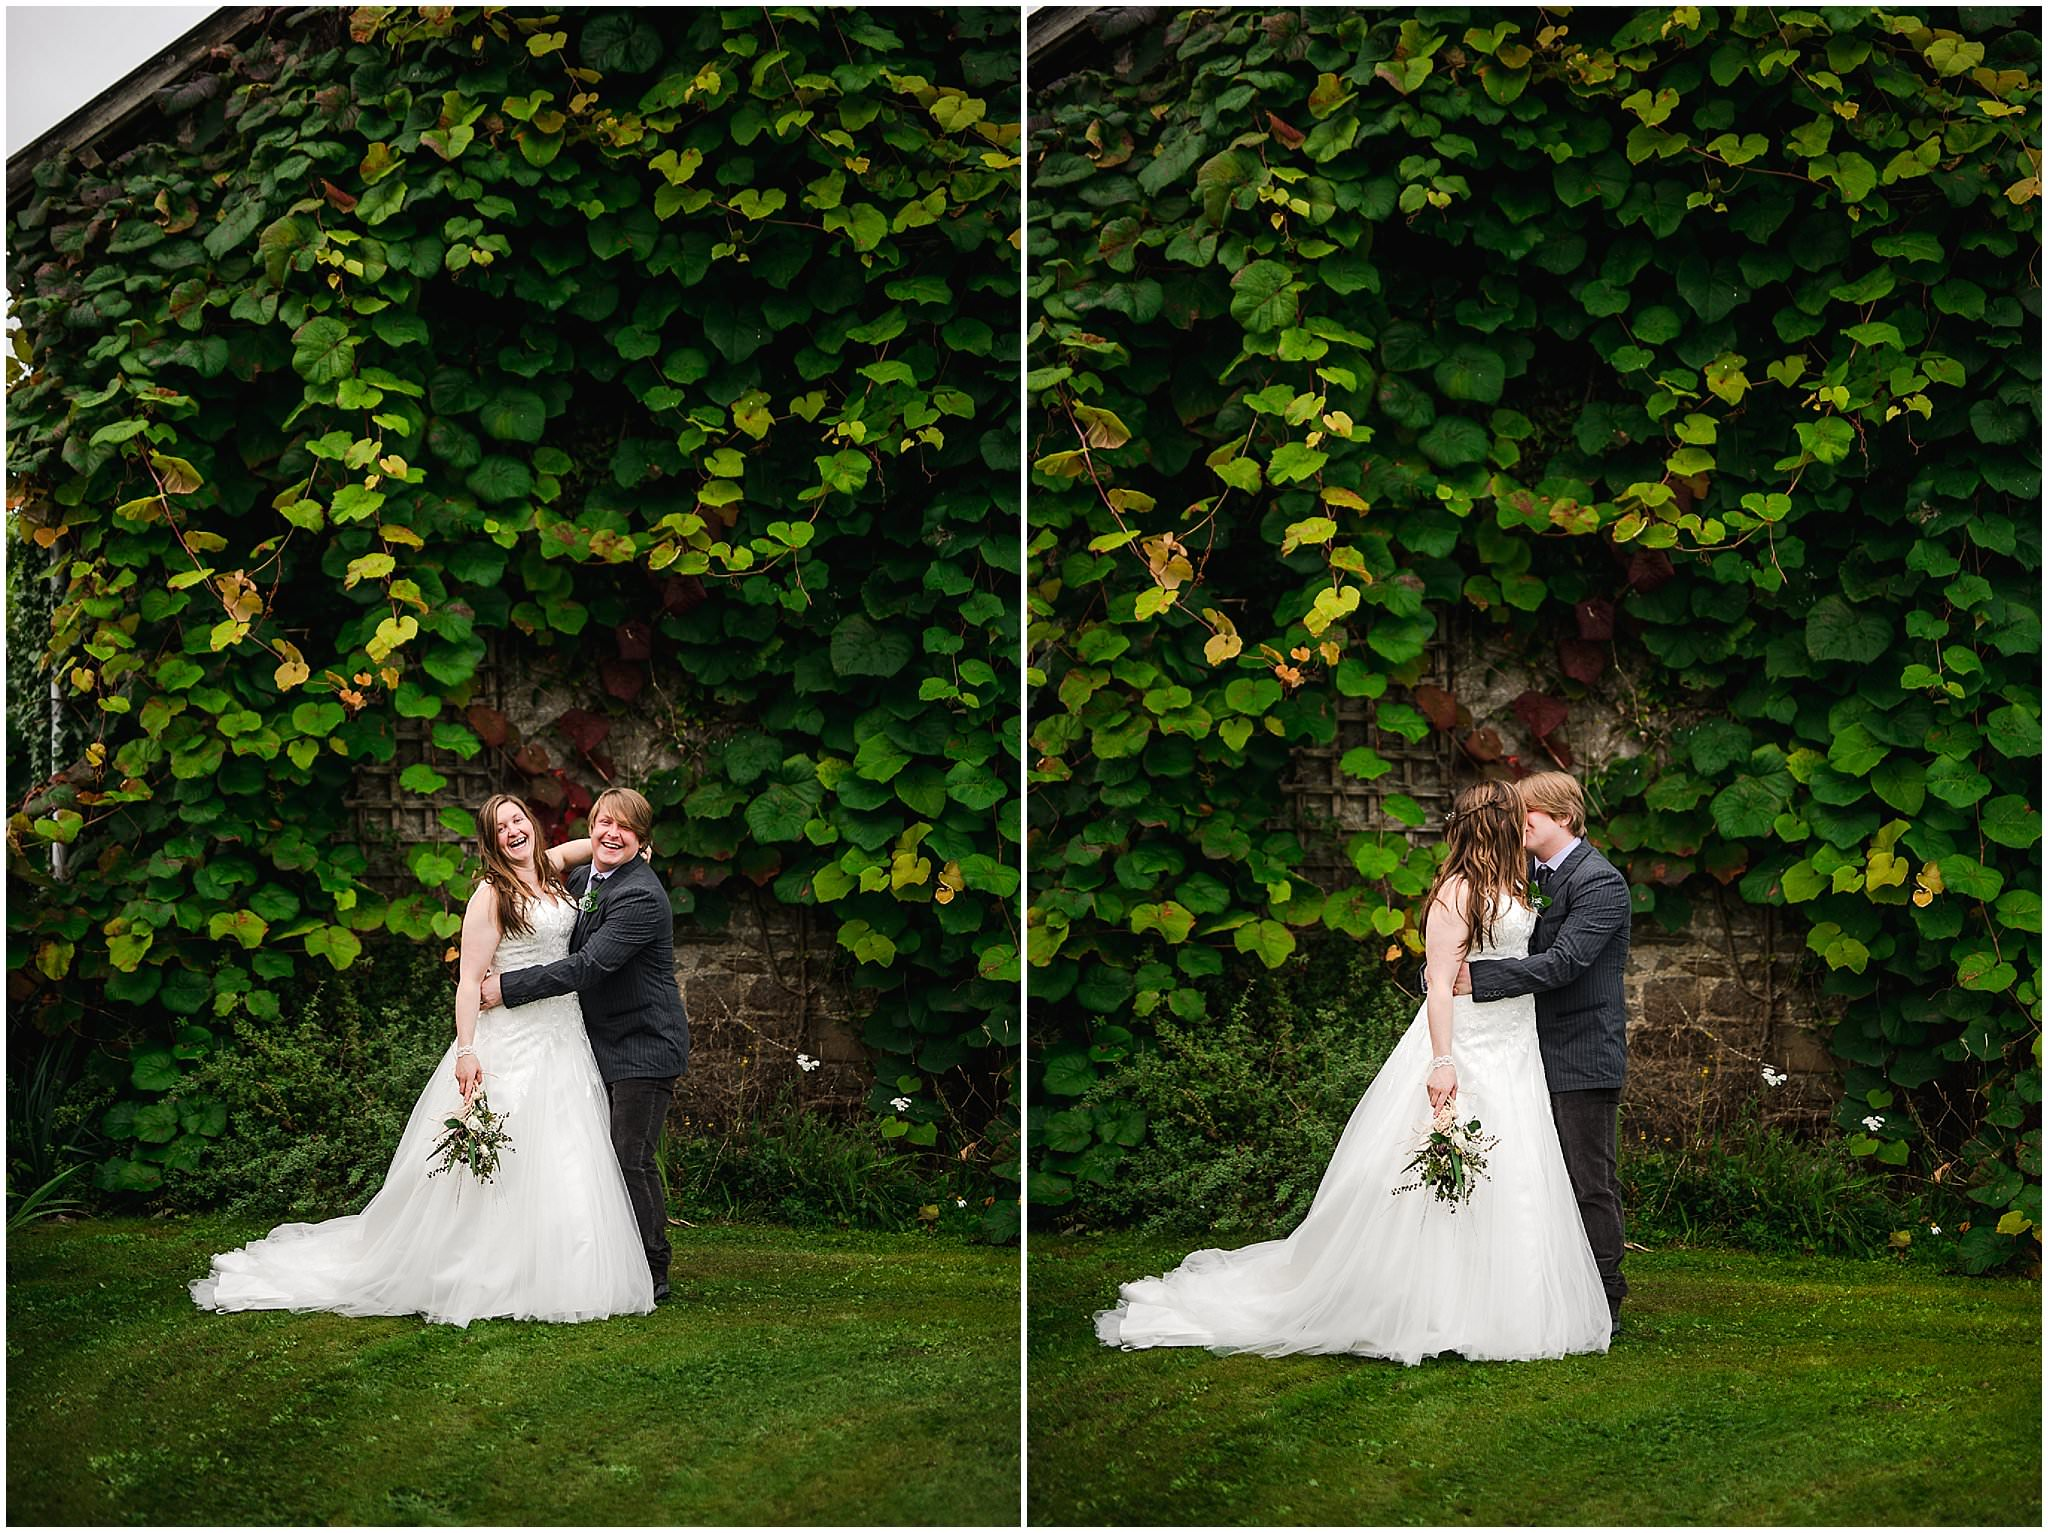 ash-barton-estate-wedding-photographer_0883